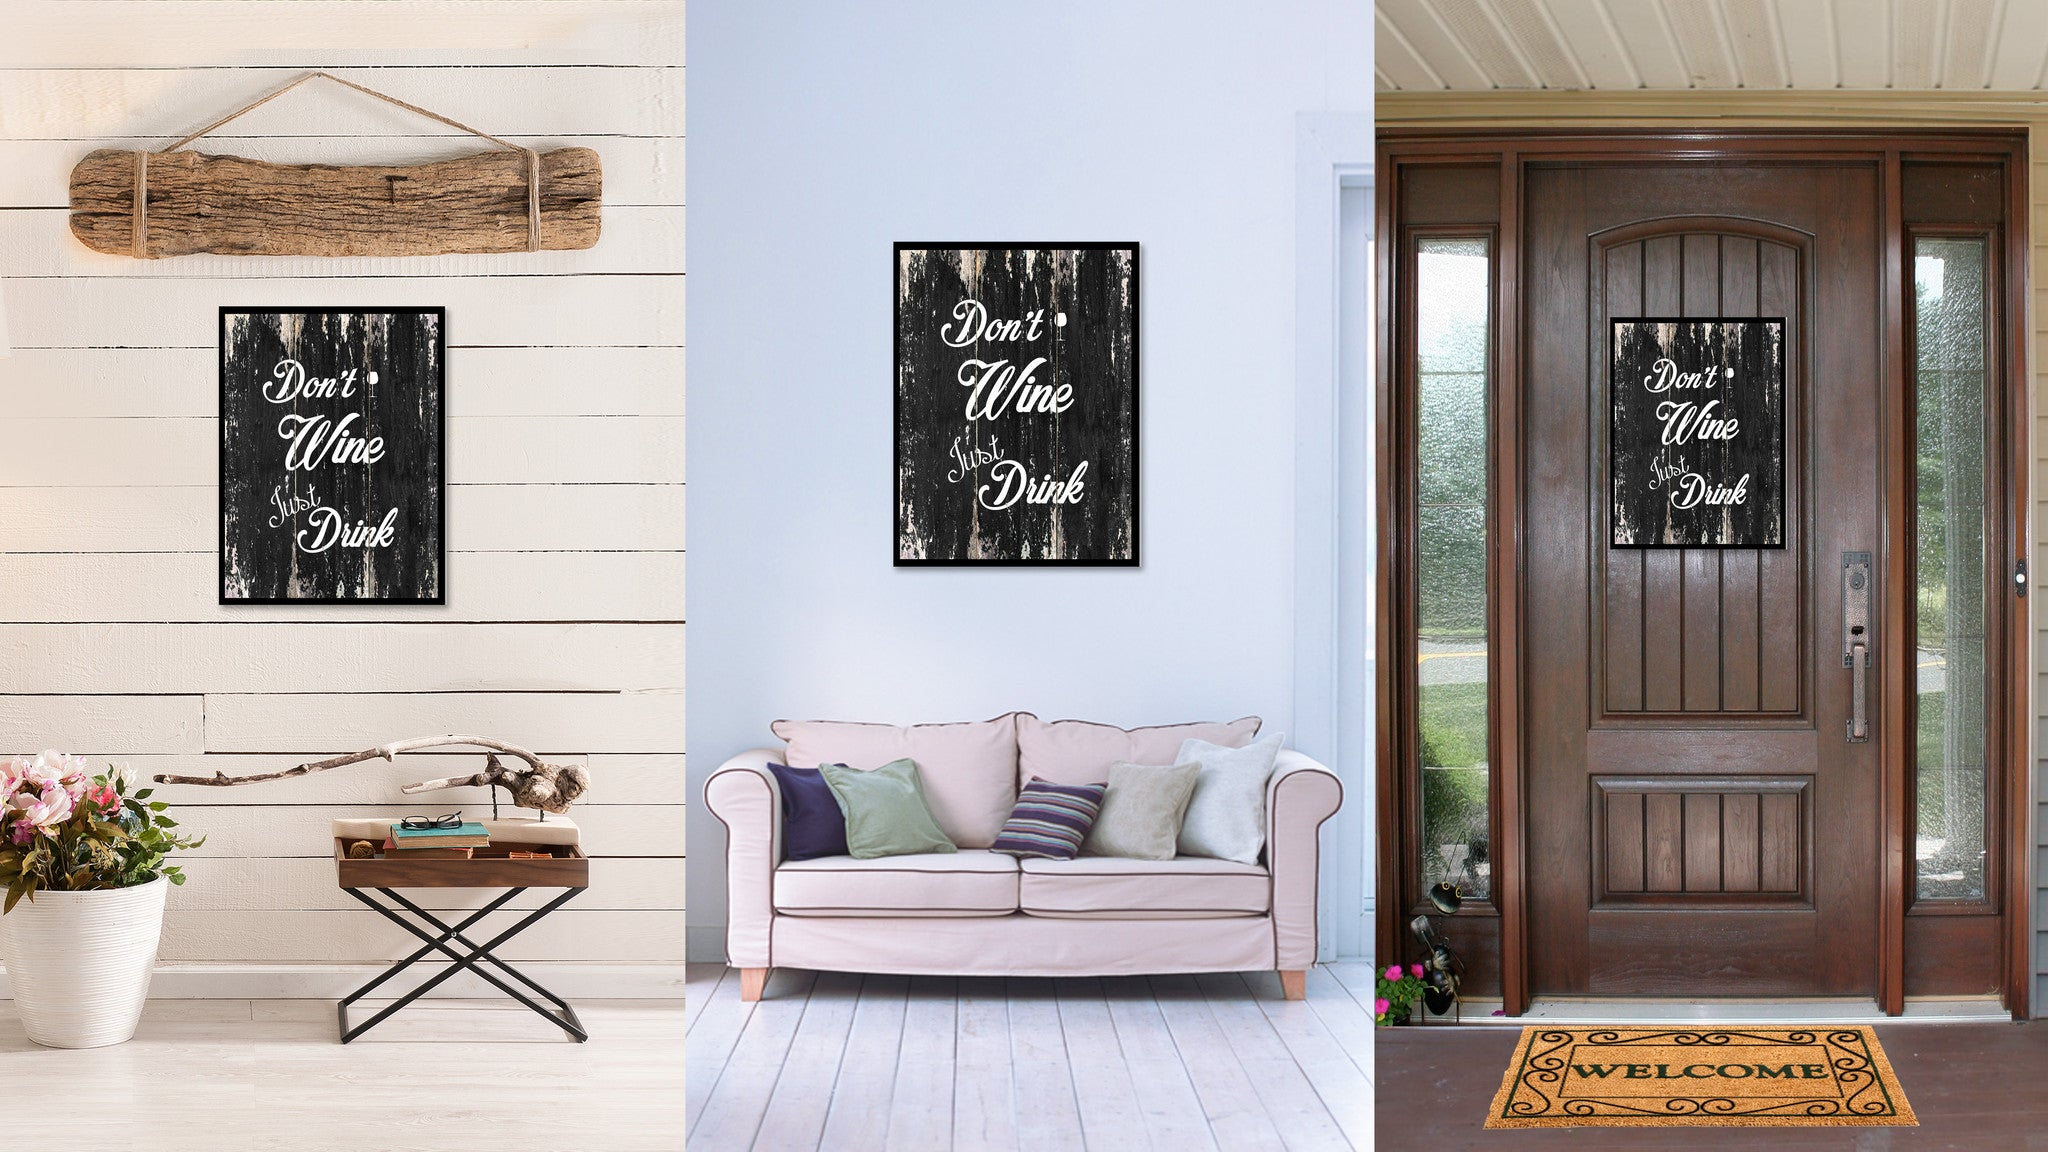 Don't wine just drink Funny Quote Saying Canvas Print with Picture Frame Home Decor Wall Art